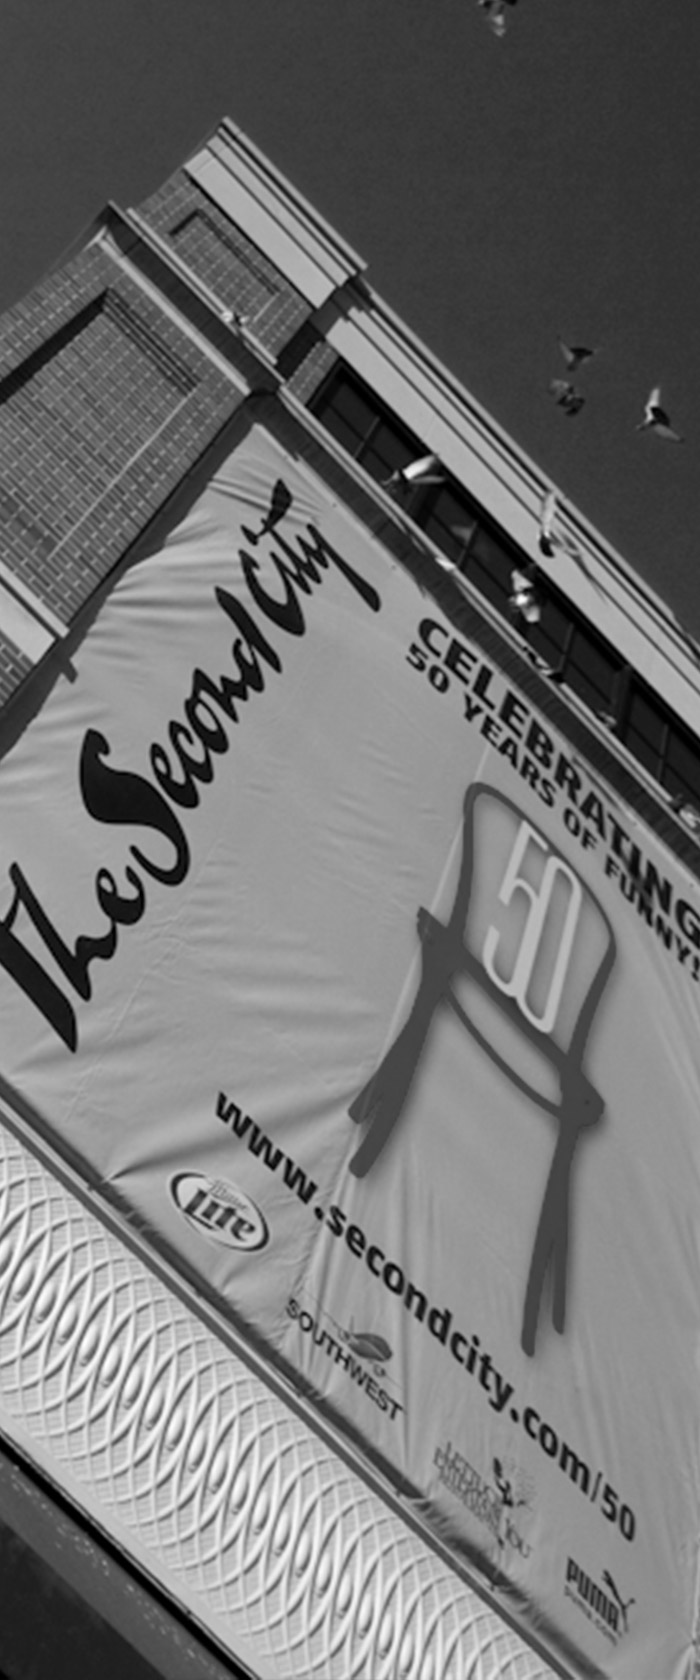 The Second City Celebrates 50 years